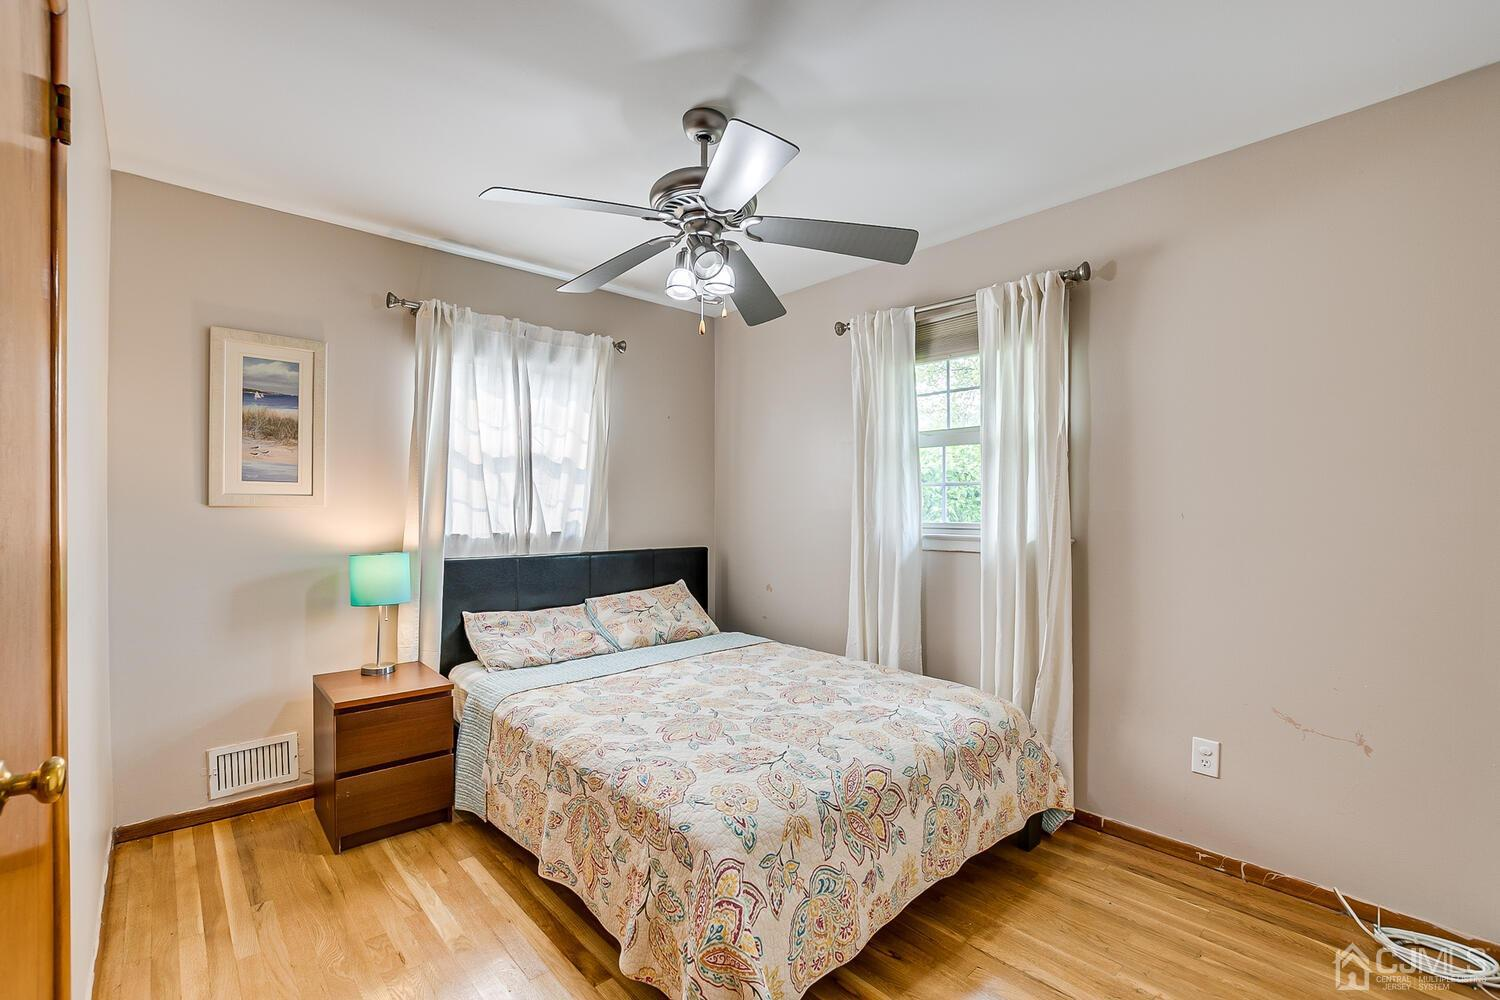 Second Bedroom with Large Closet and Ceiling Fan.